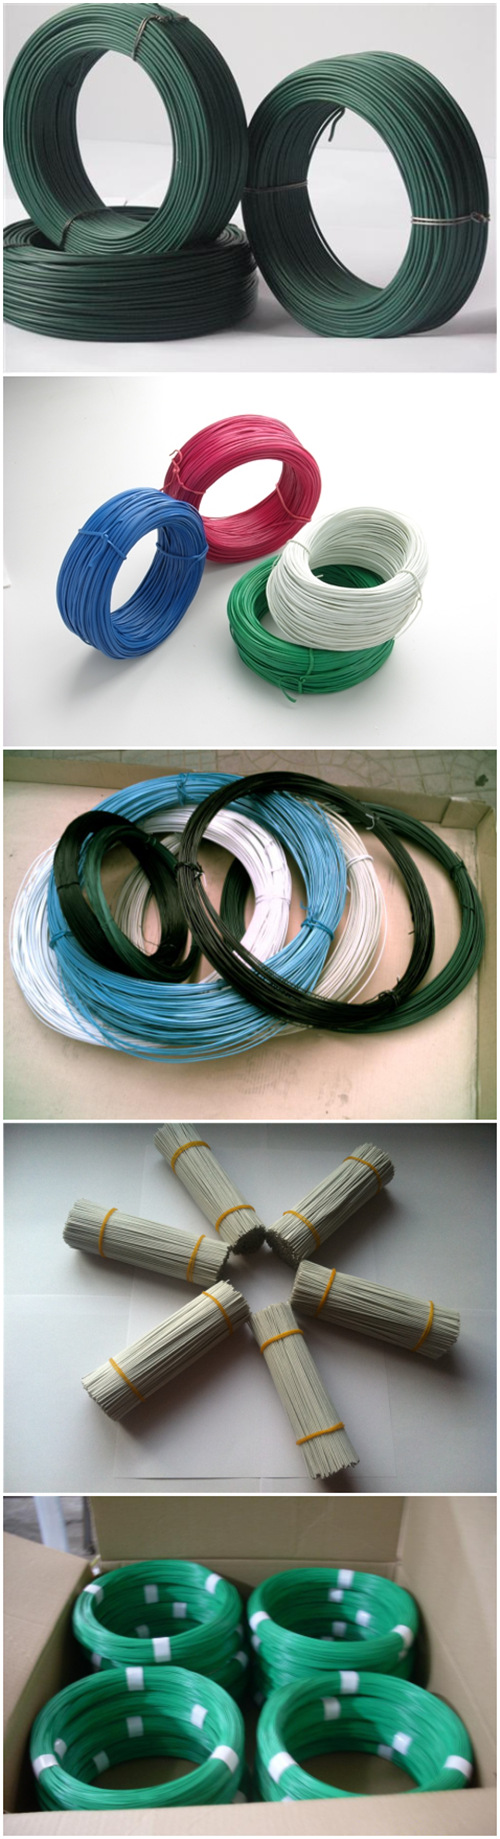 2016 Hot Sale PVC Coated Wire Made in China